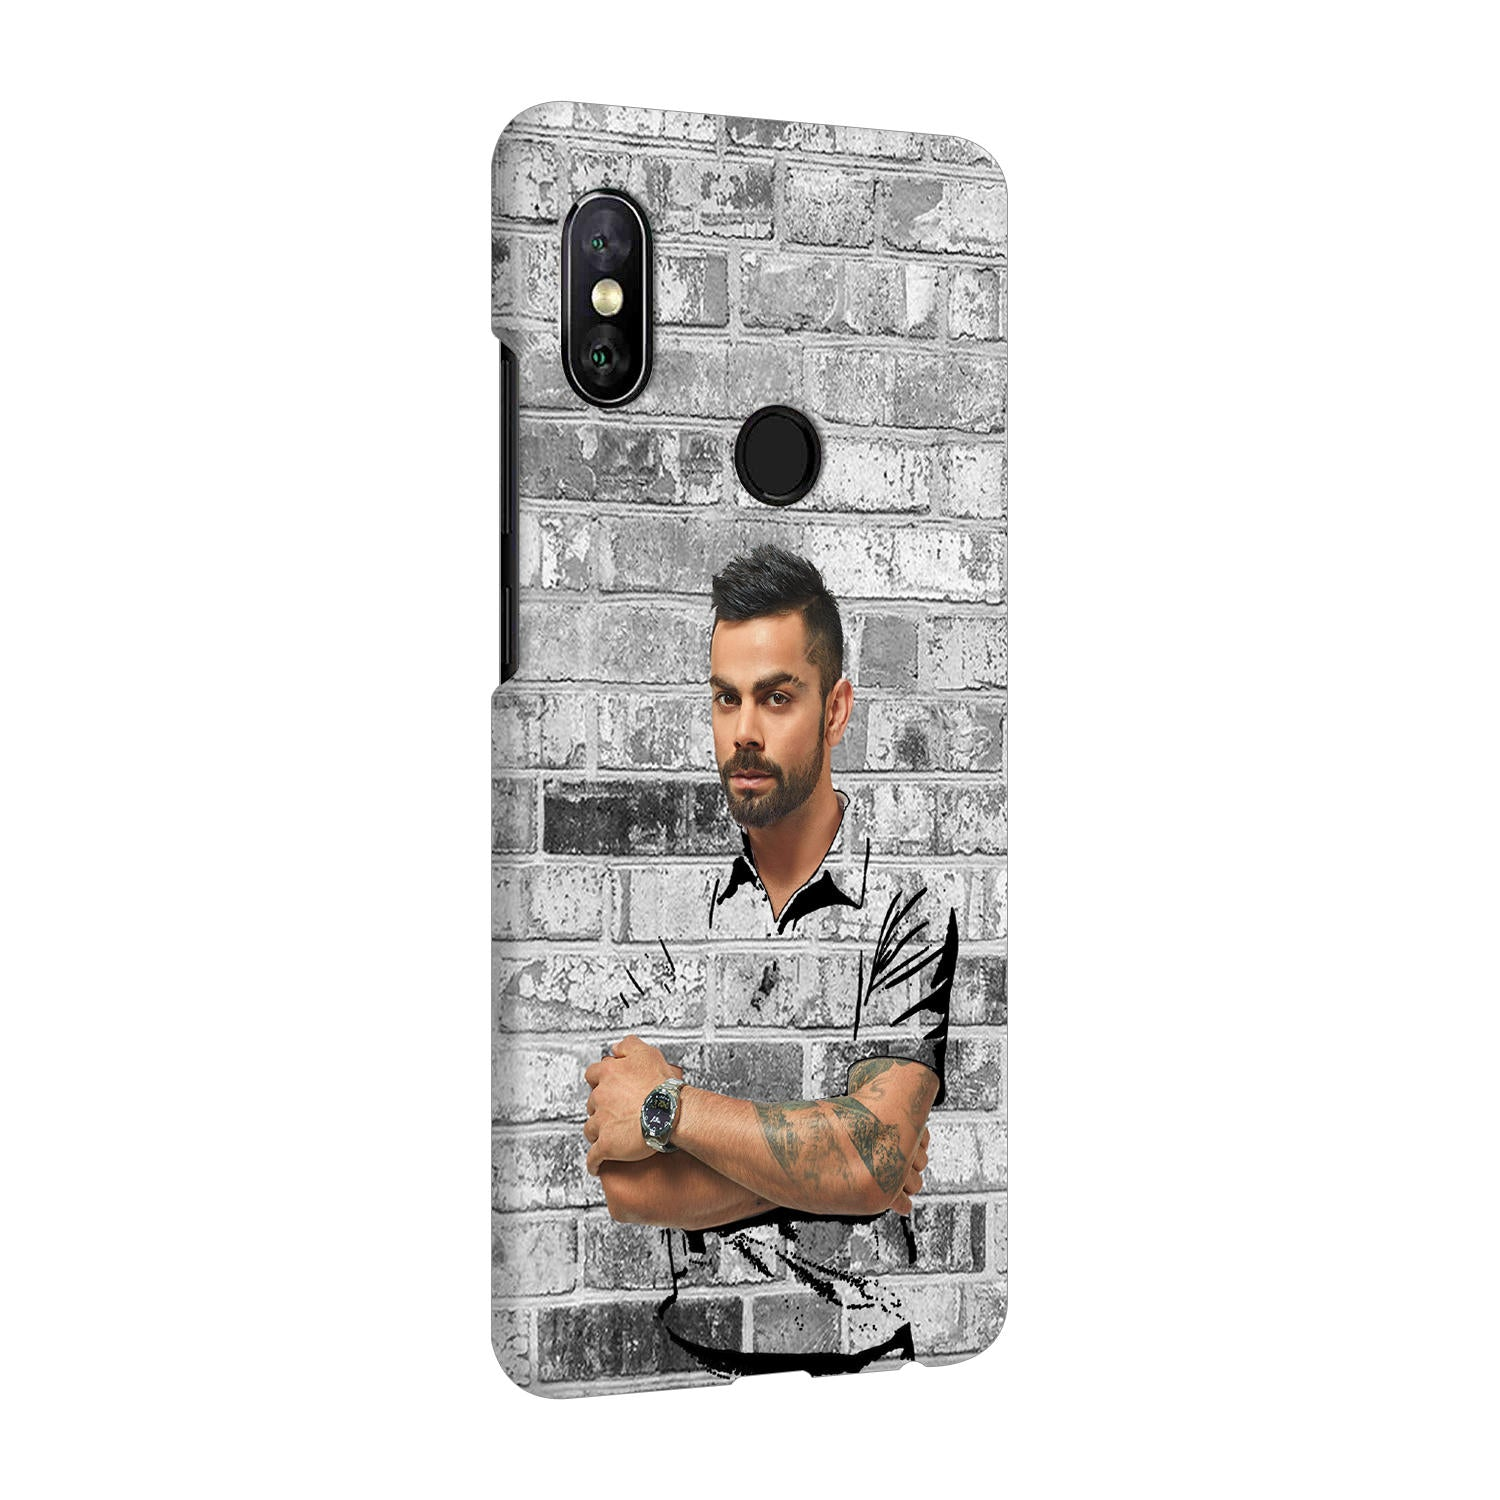 The Wall Of Kohli Vivo V9 Mobile Cover Case - MADANYU